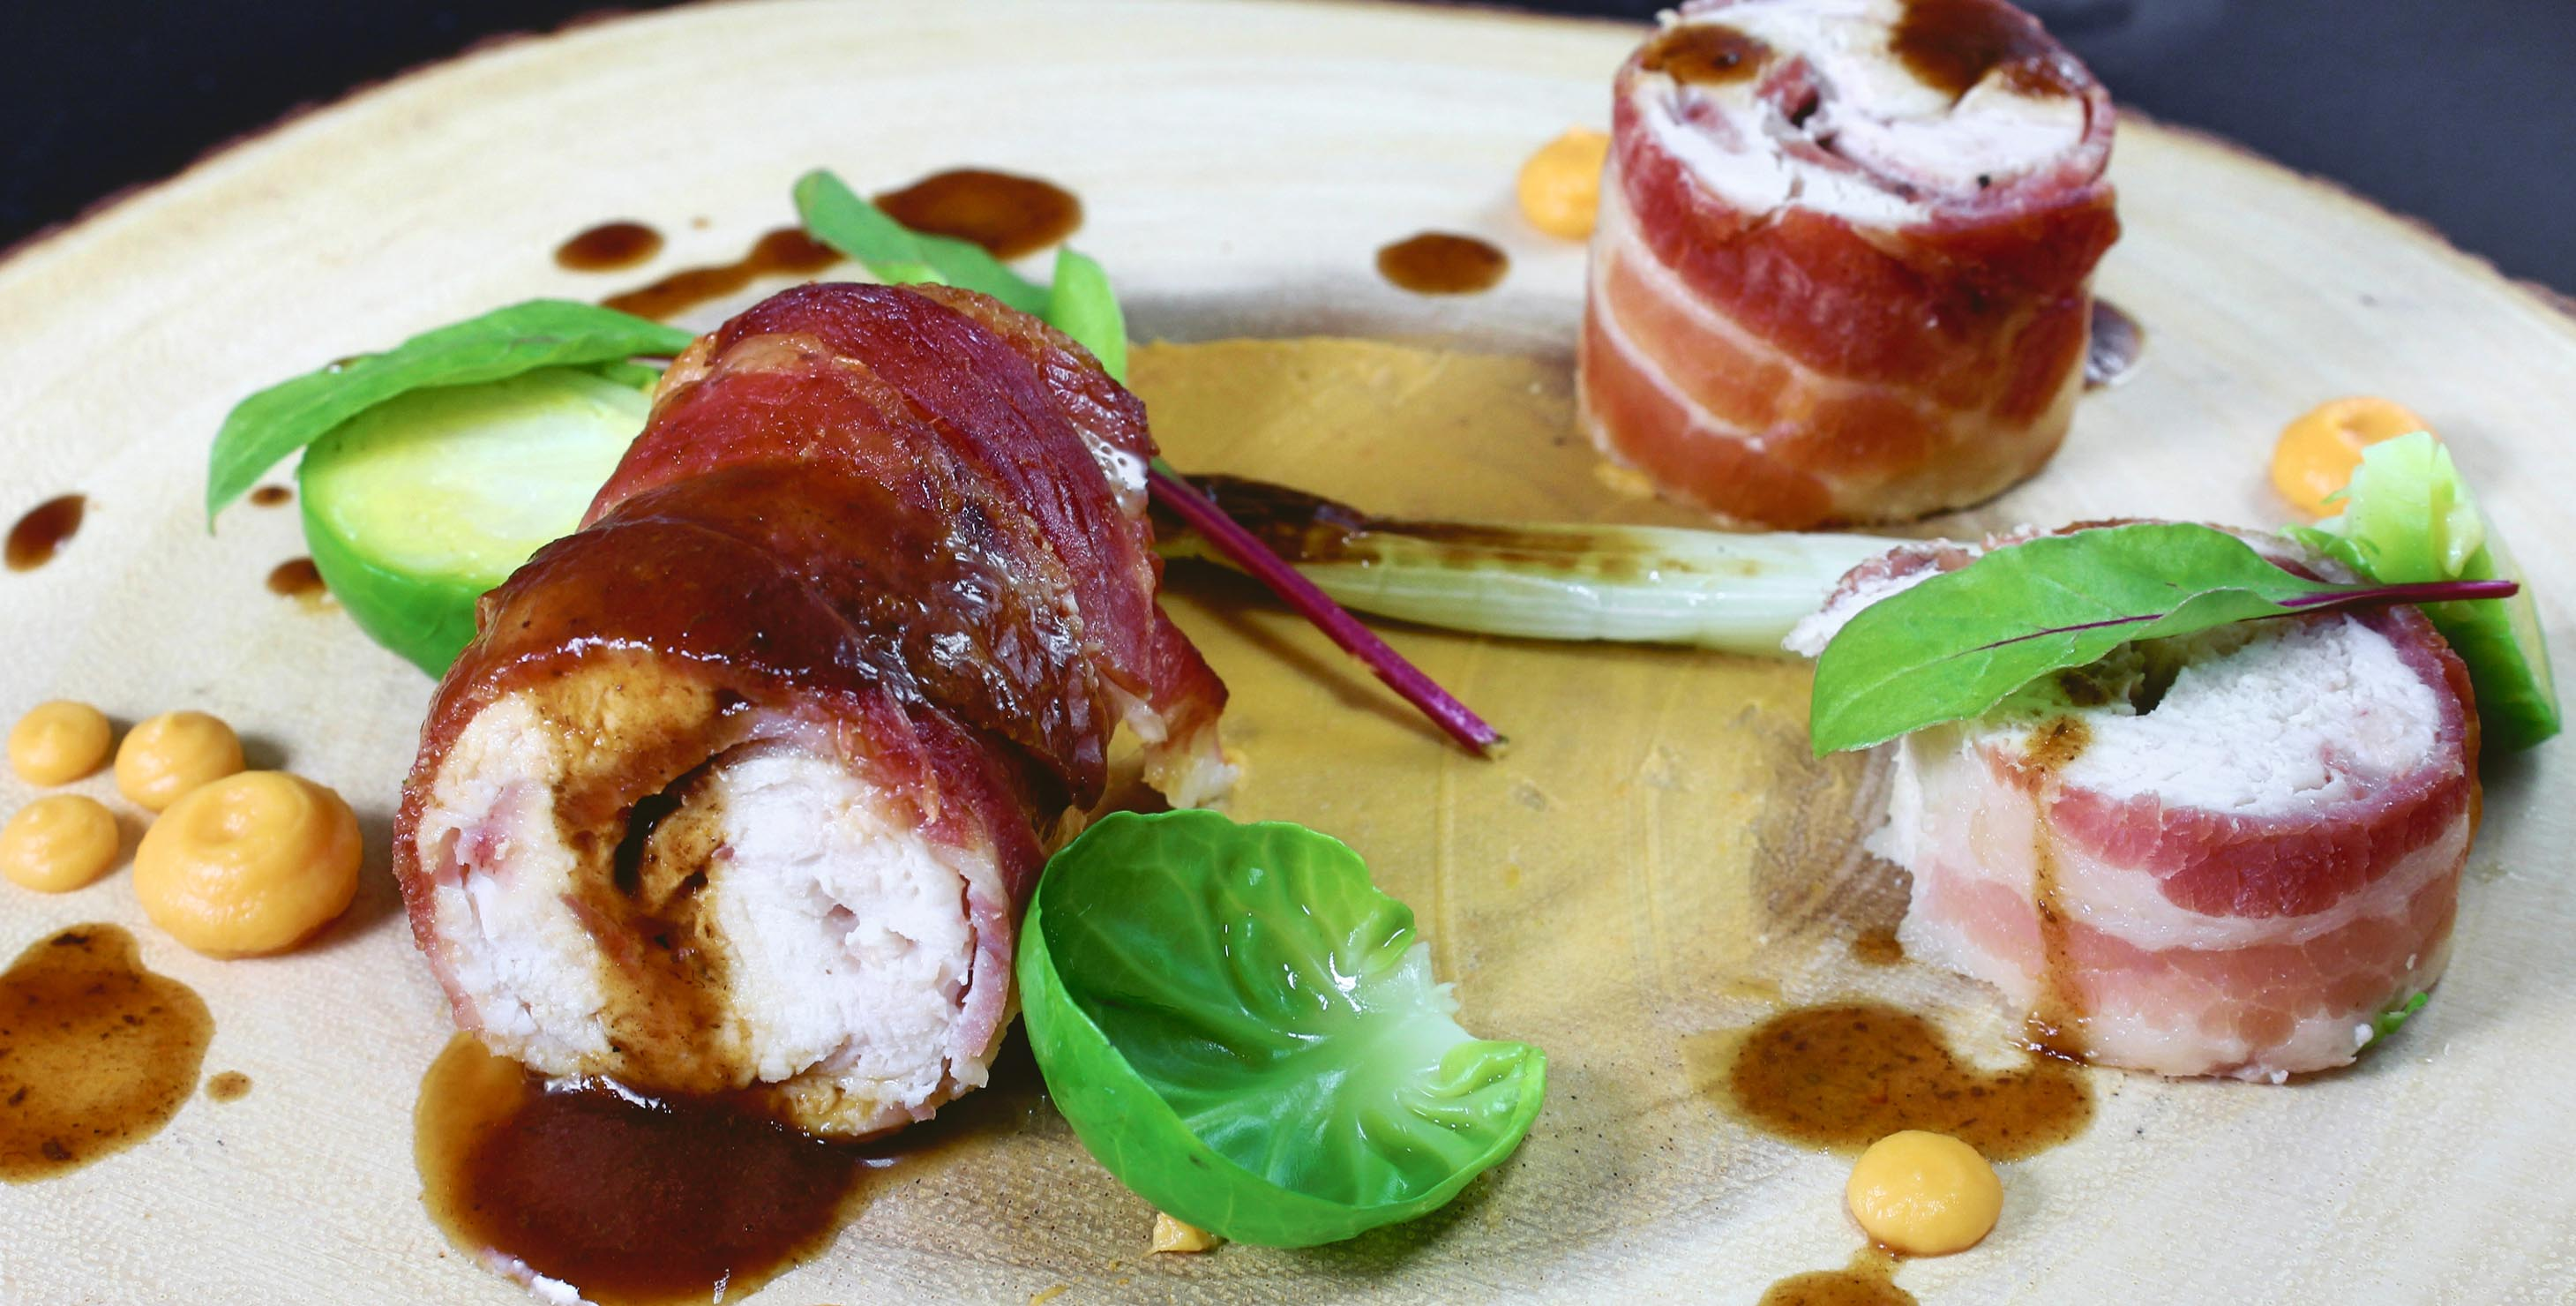 Bacon wrapped stuffed chicken on a wooden cutting board